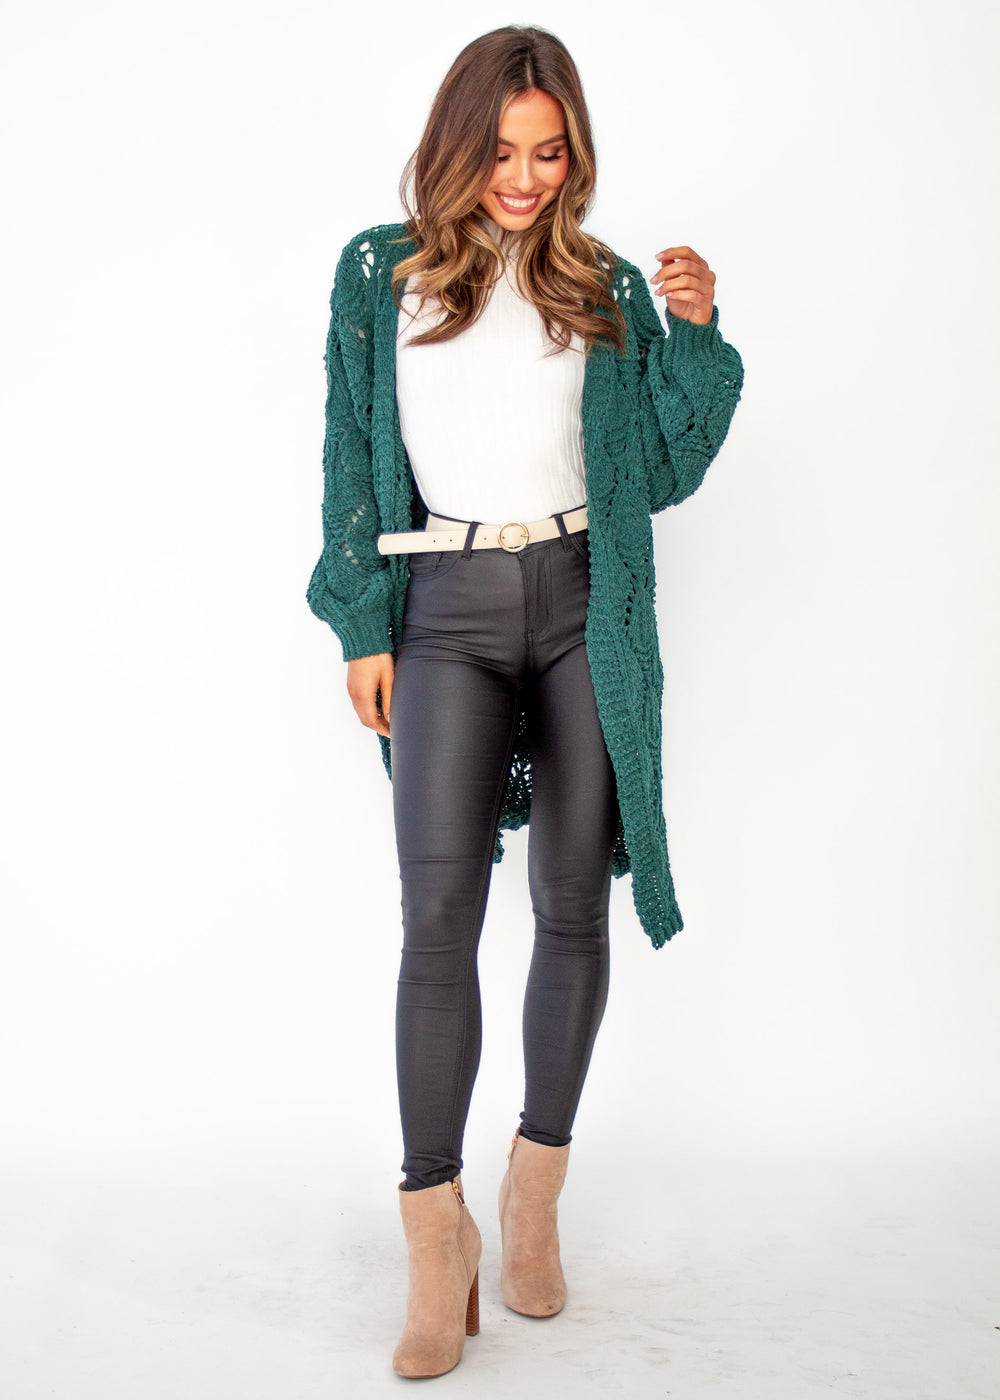 Women's Malibu Sunset Cardigan - Emerald